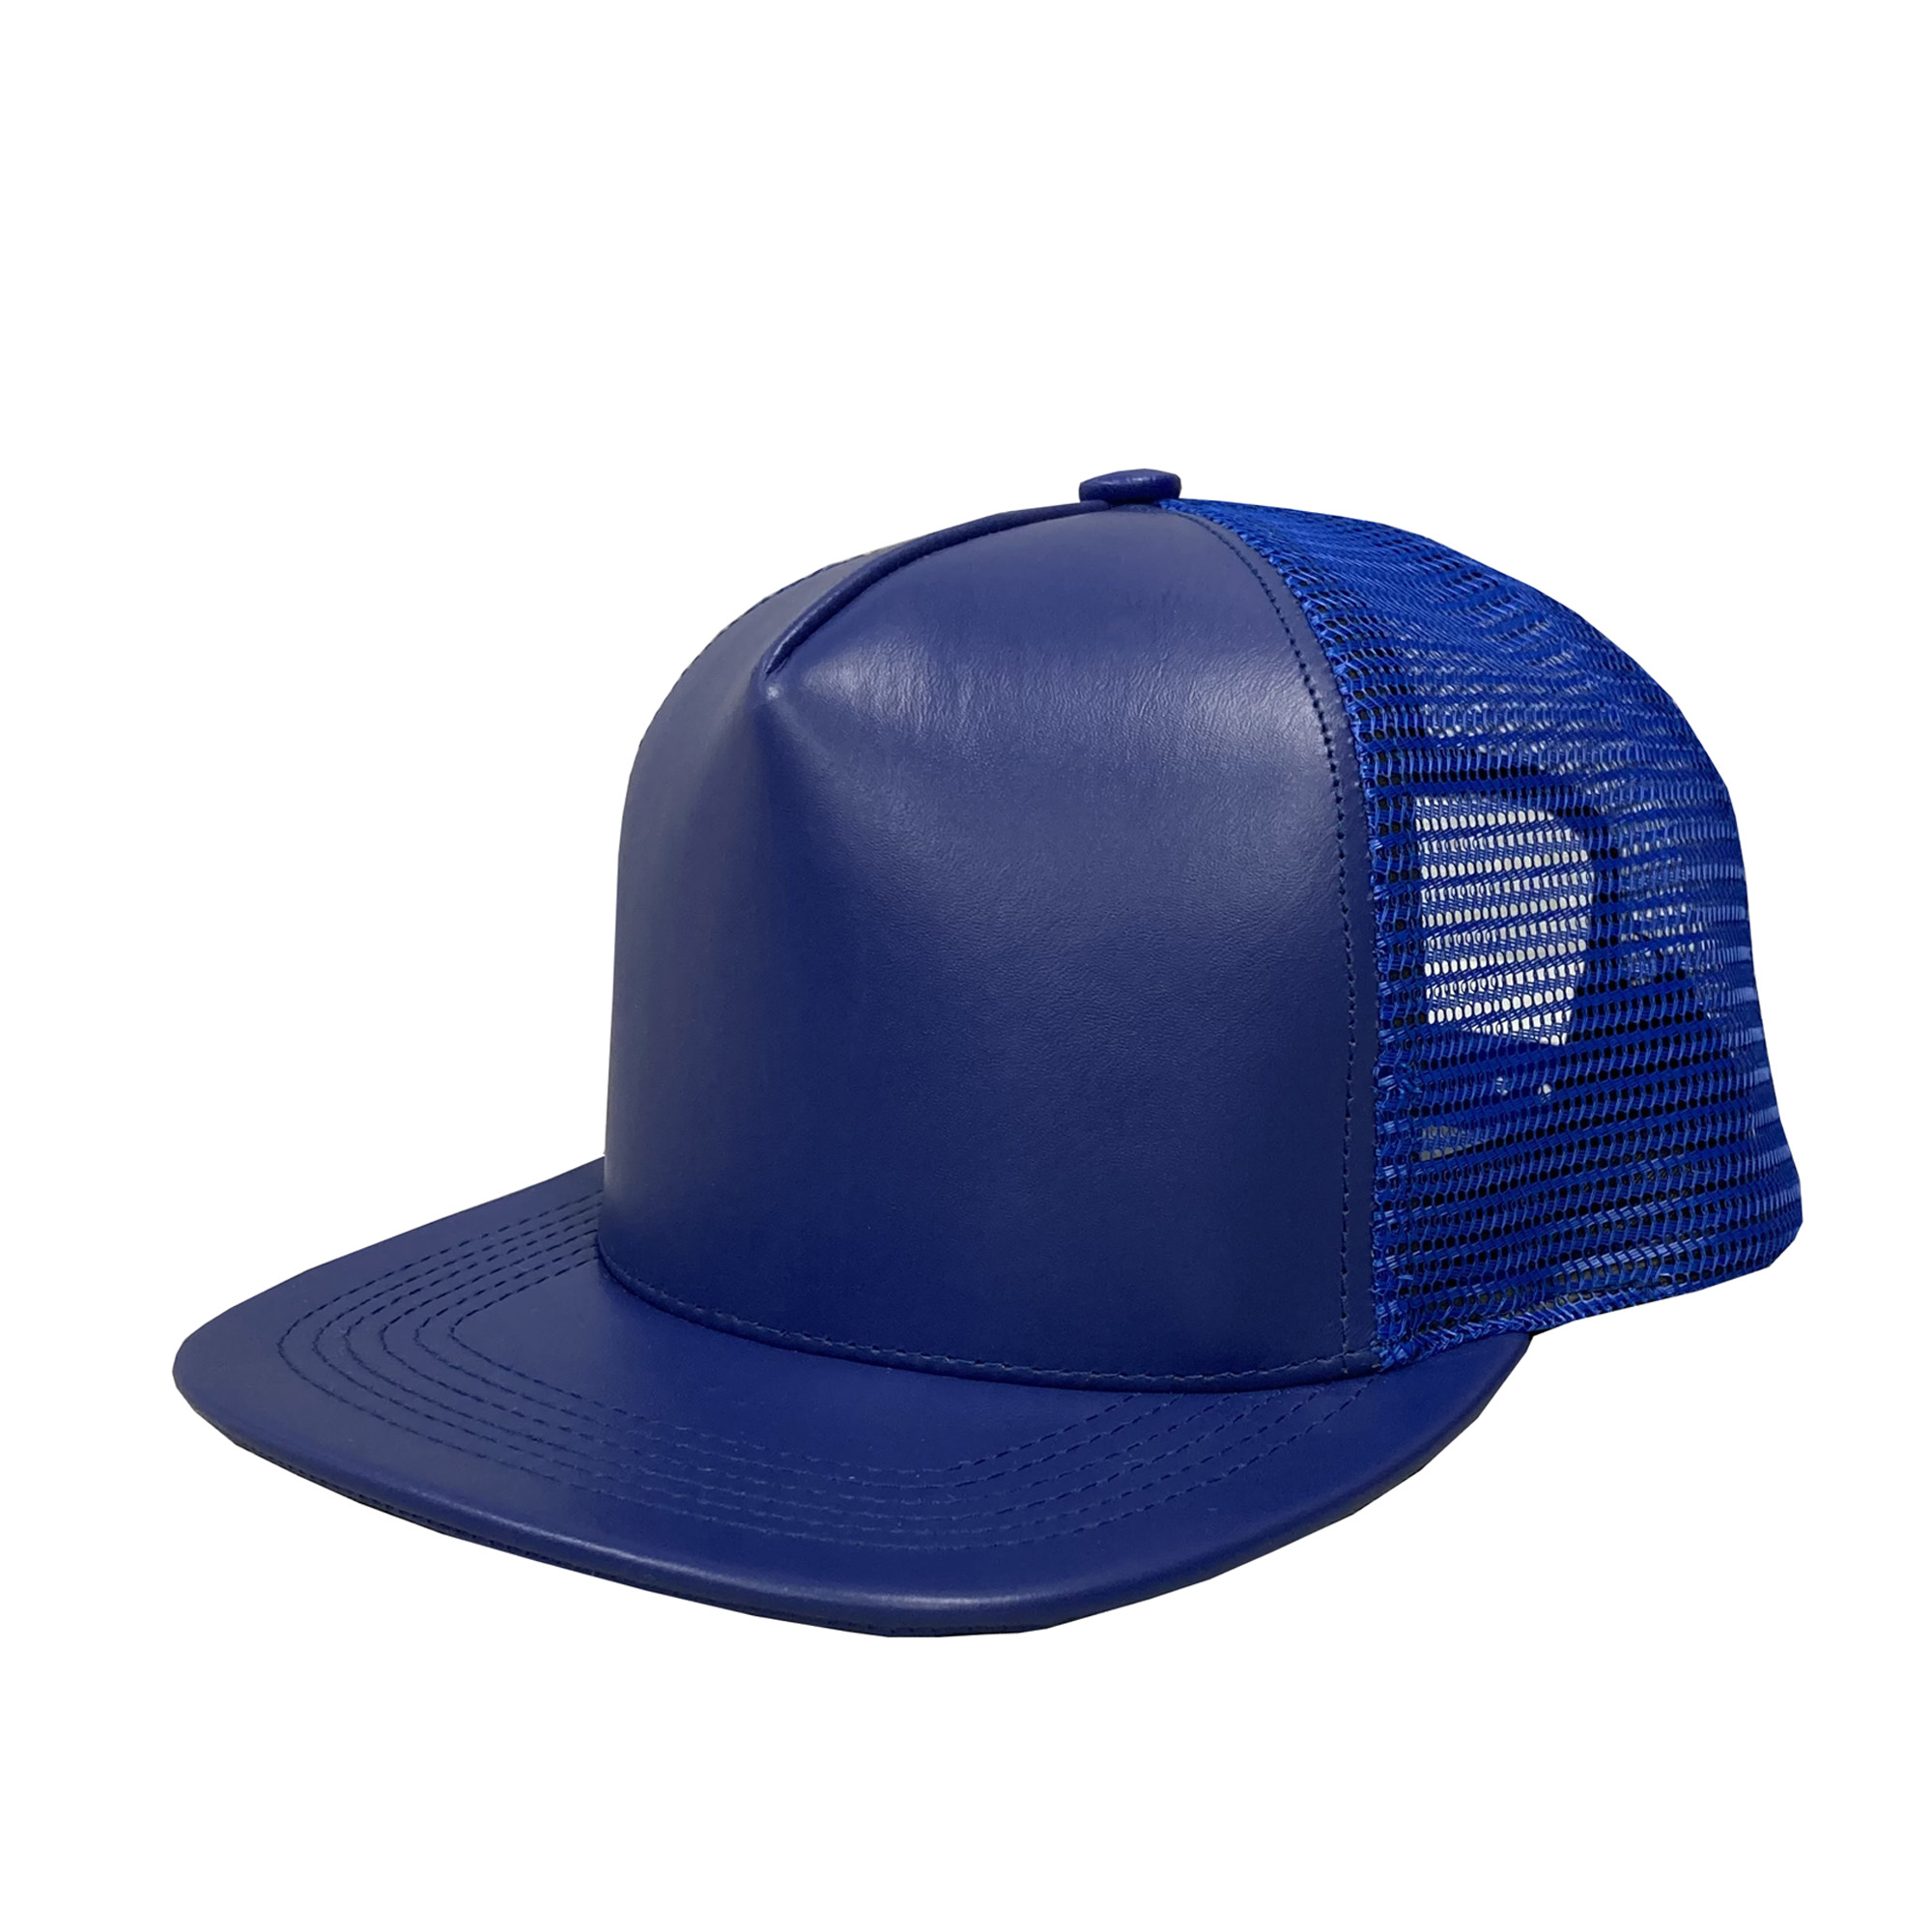 Royal Blue Leather High-Profile Mesh Cap